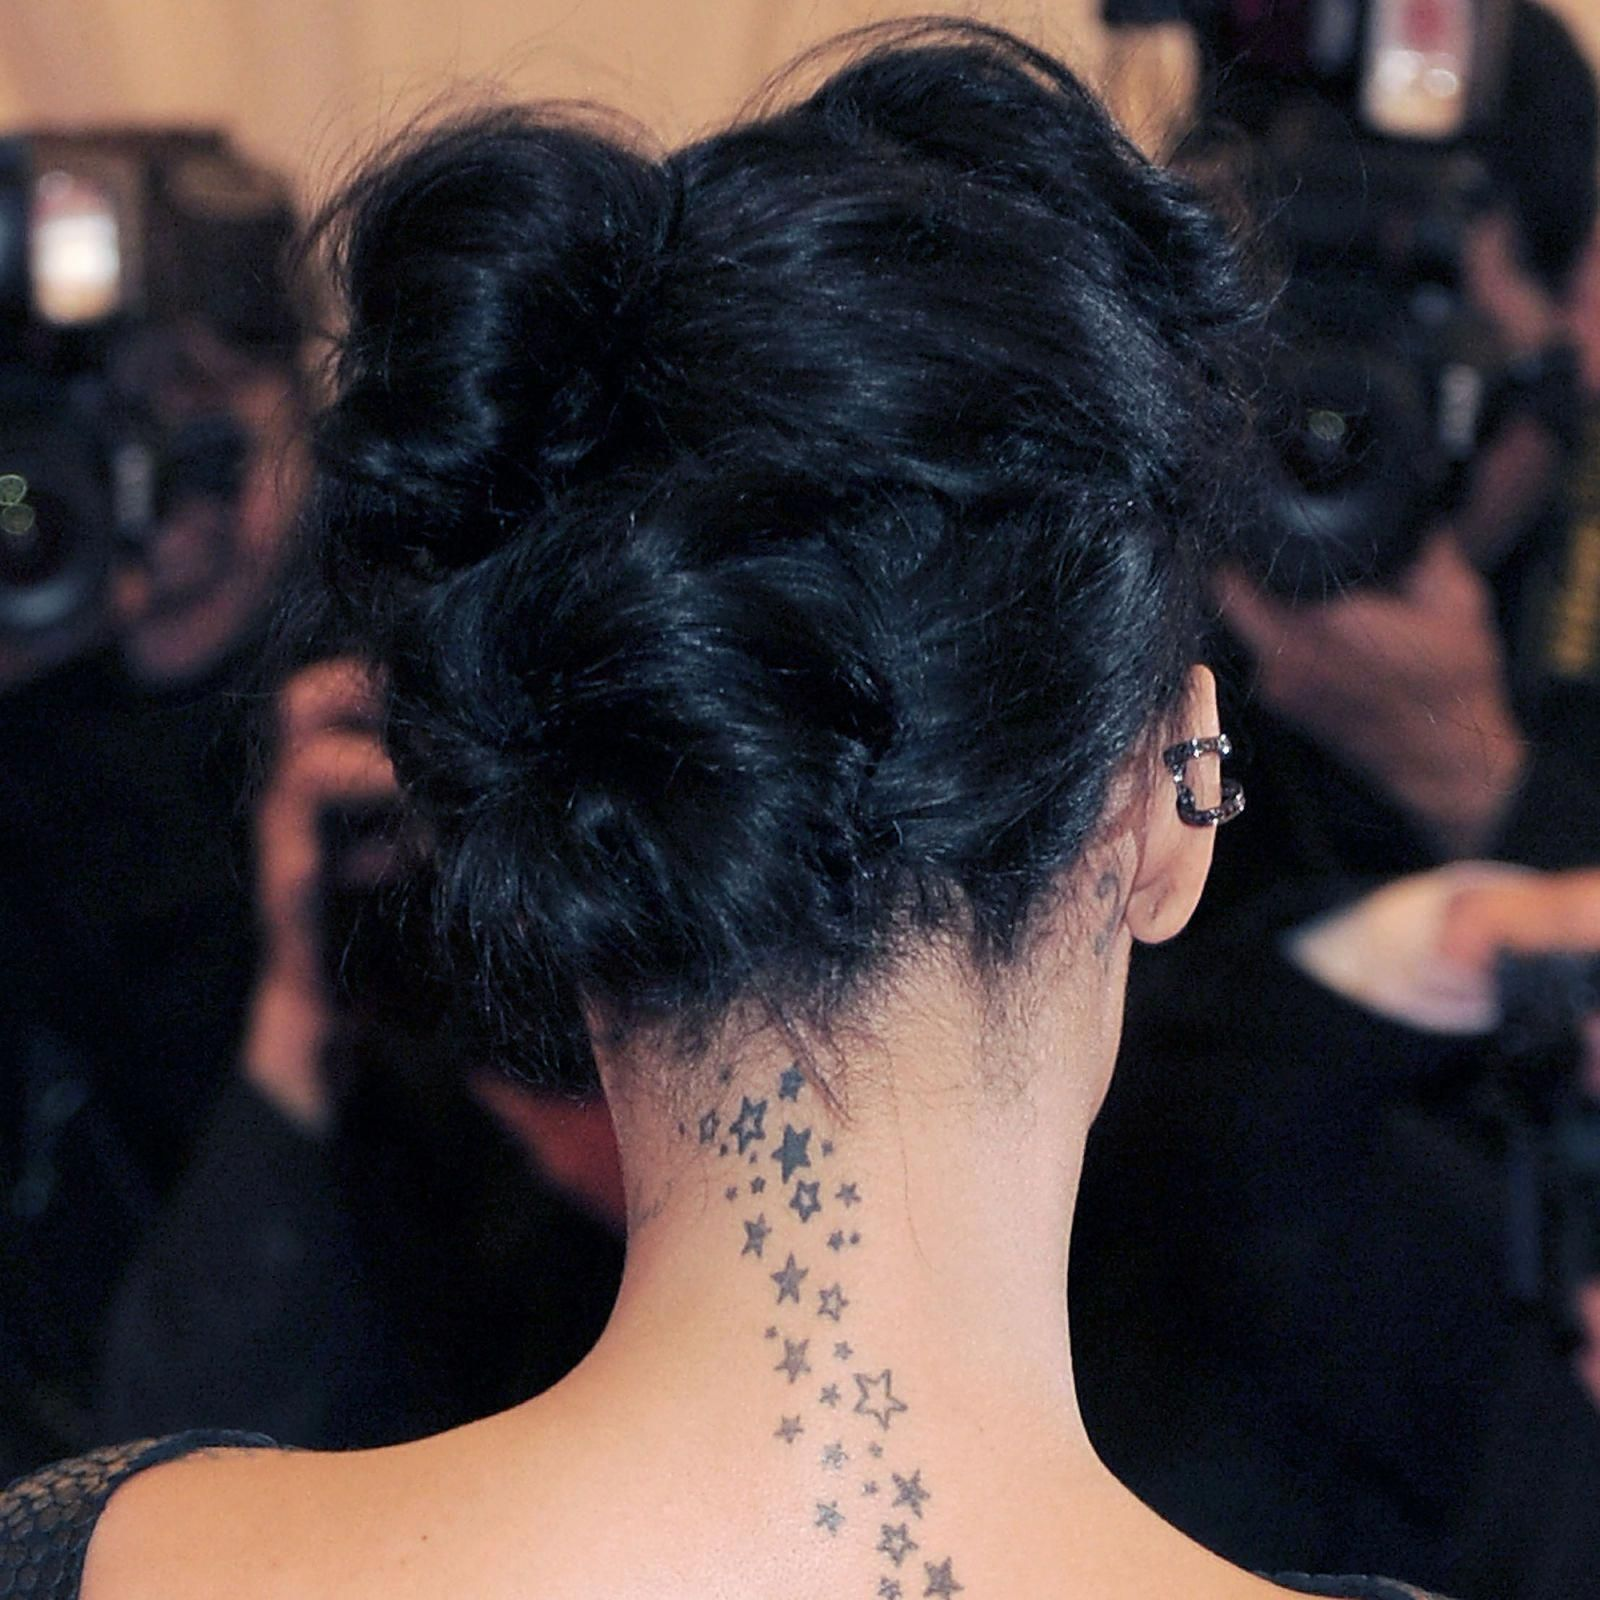 What Tattoo Removal Really Feels Like Tattoo Removal Neck Tattoo Skin Color Tattoos